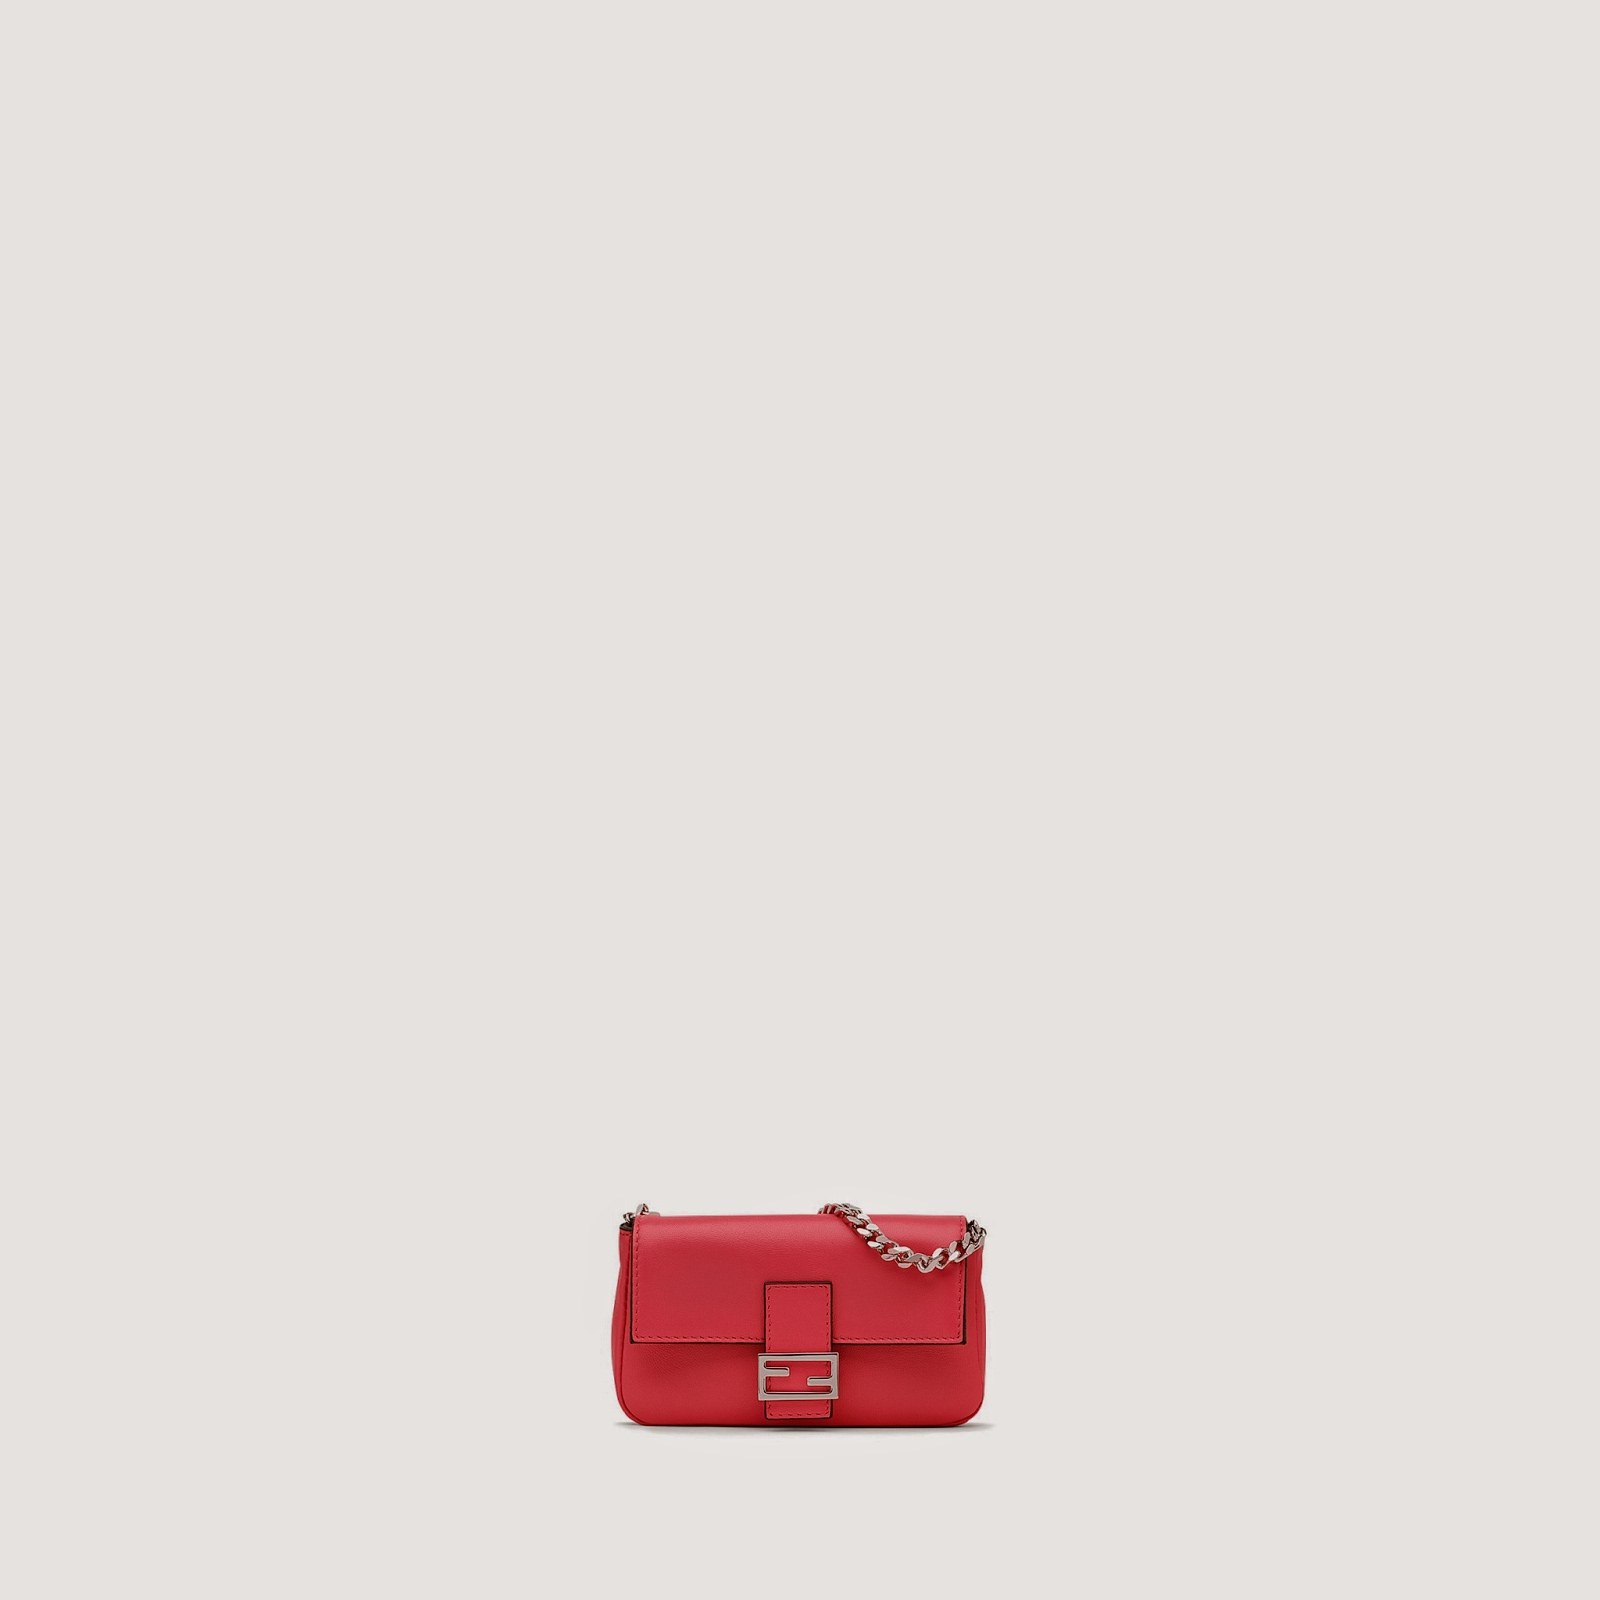 Fendi Spring/Summer 15: The Micro Bags